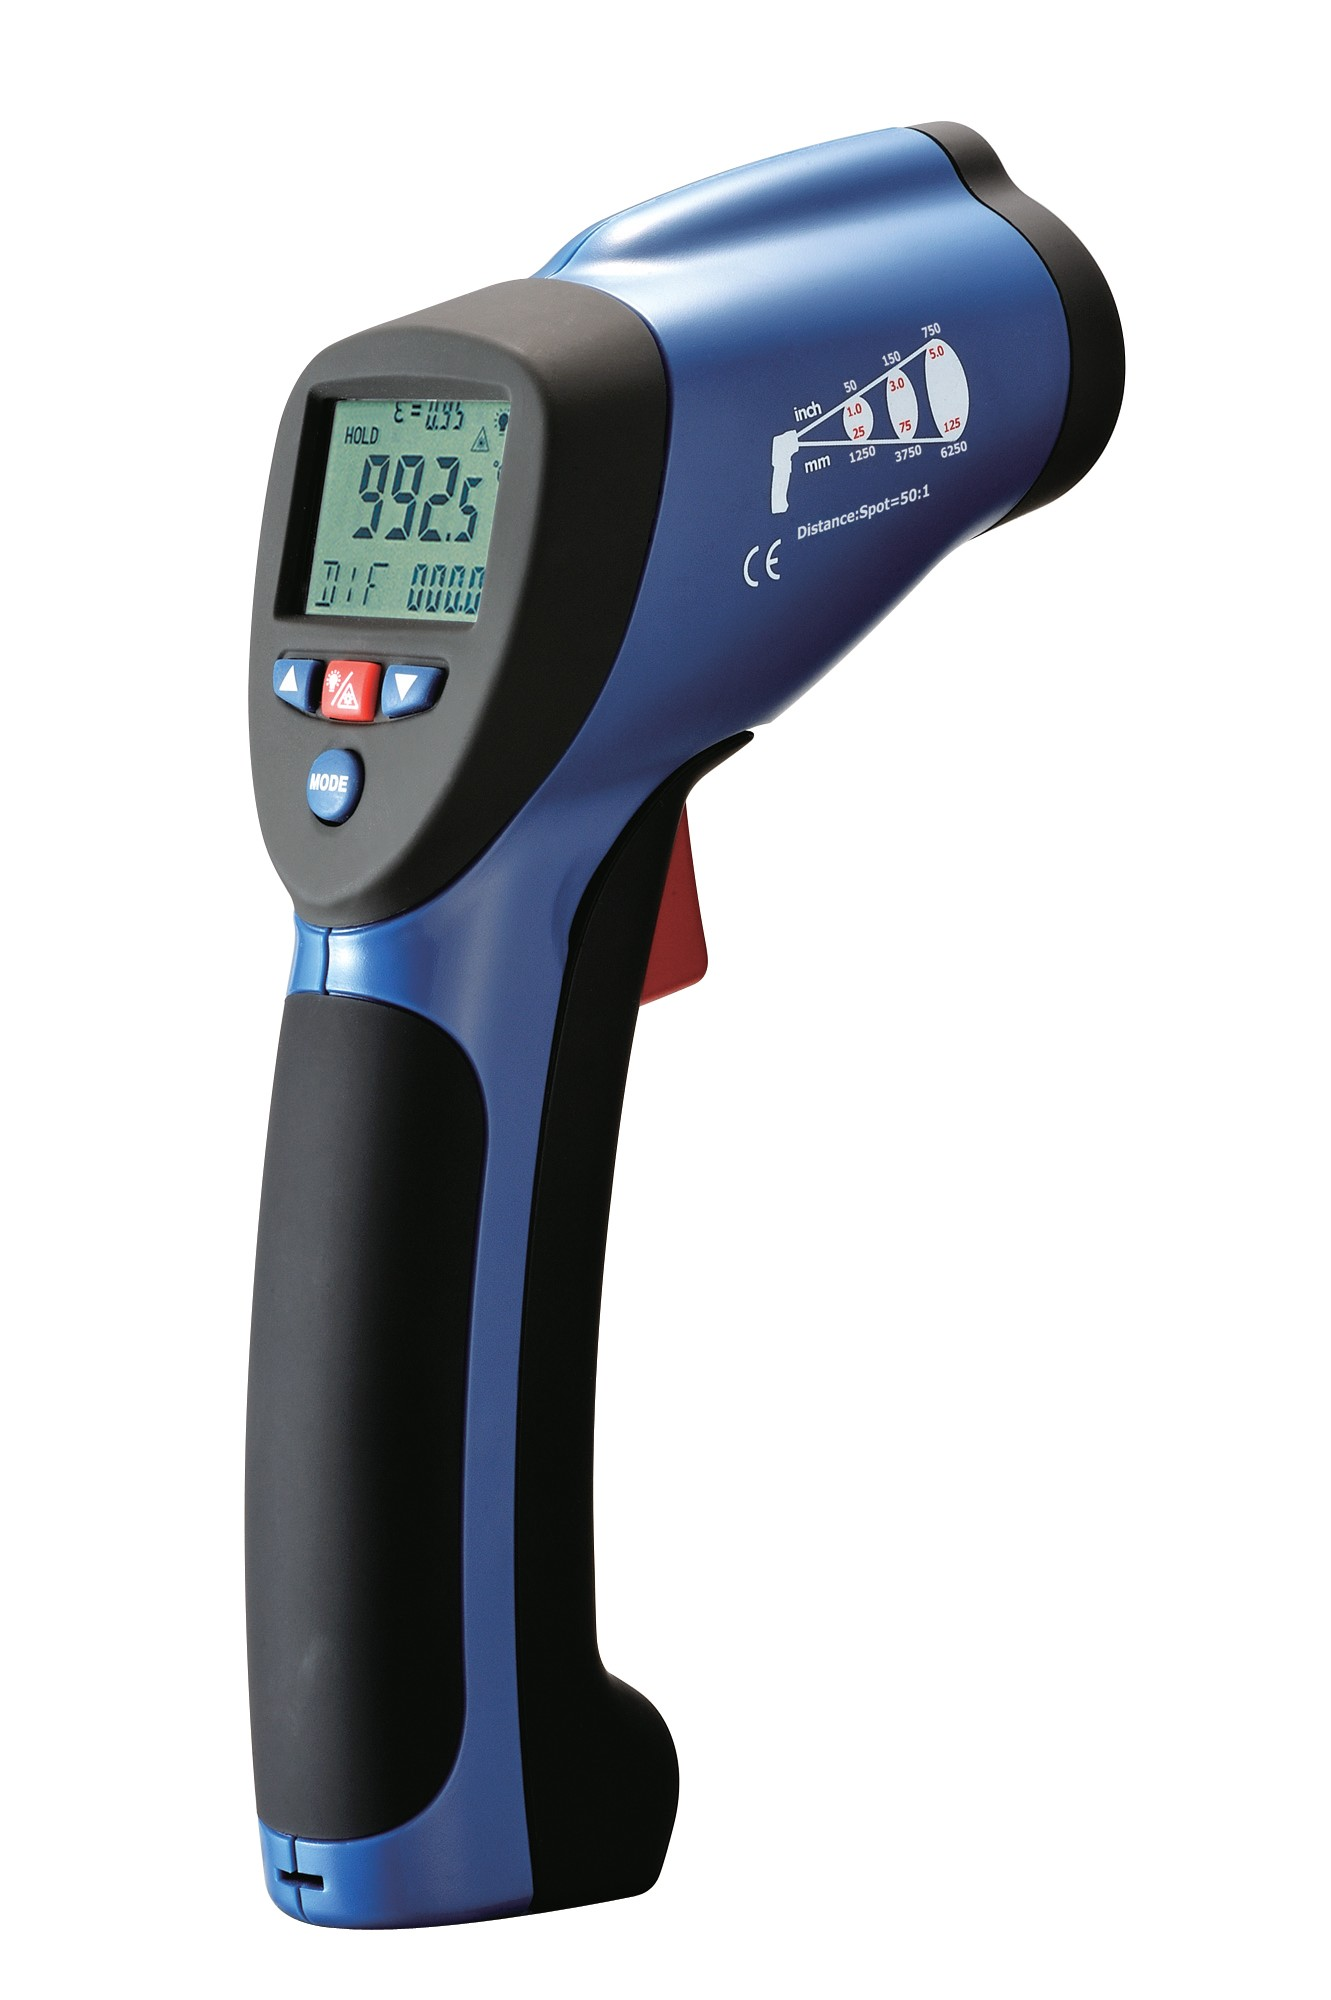 REED ST-8839 Infrared Thermometer, -50 to 1000°C (-58 to 1832°F)-